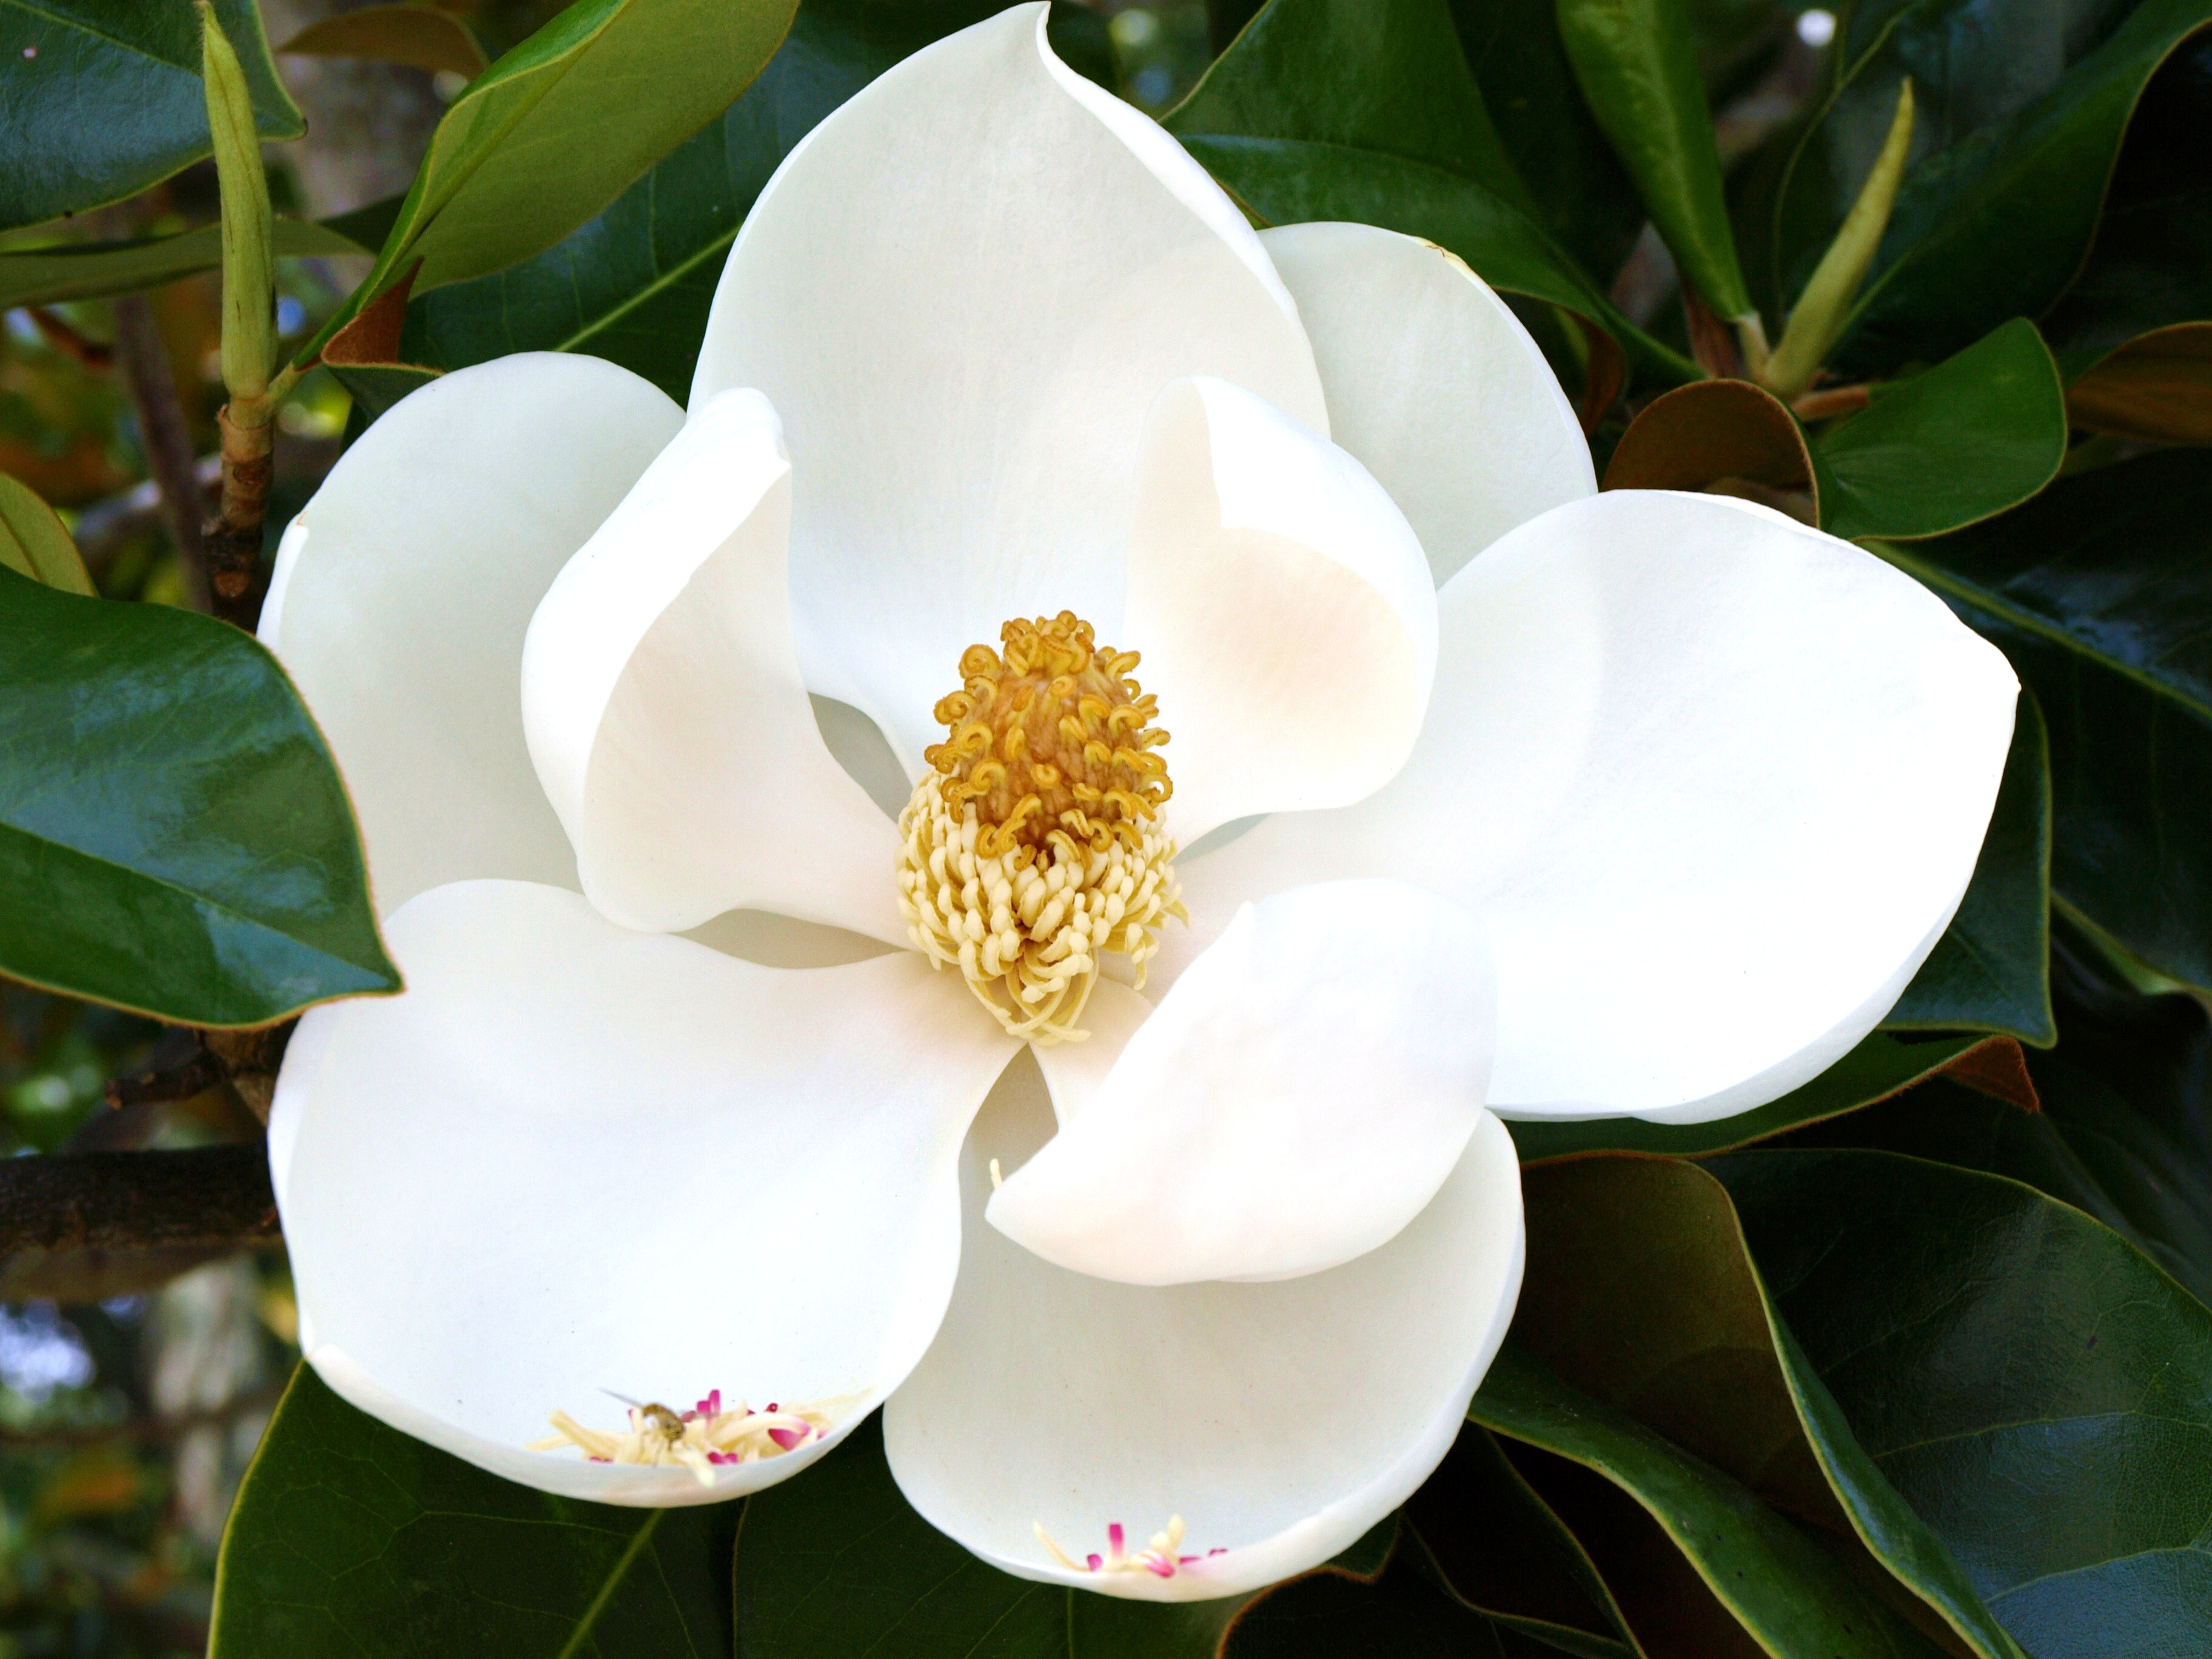 Magnolia White Flower 73.82 Kb